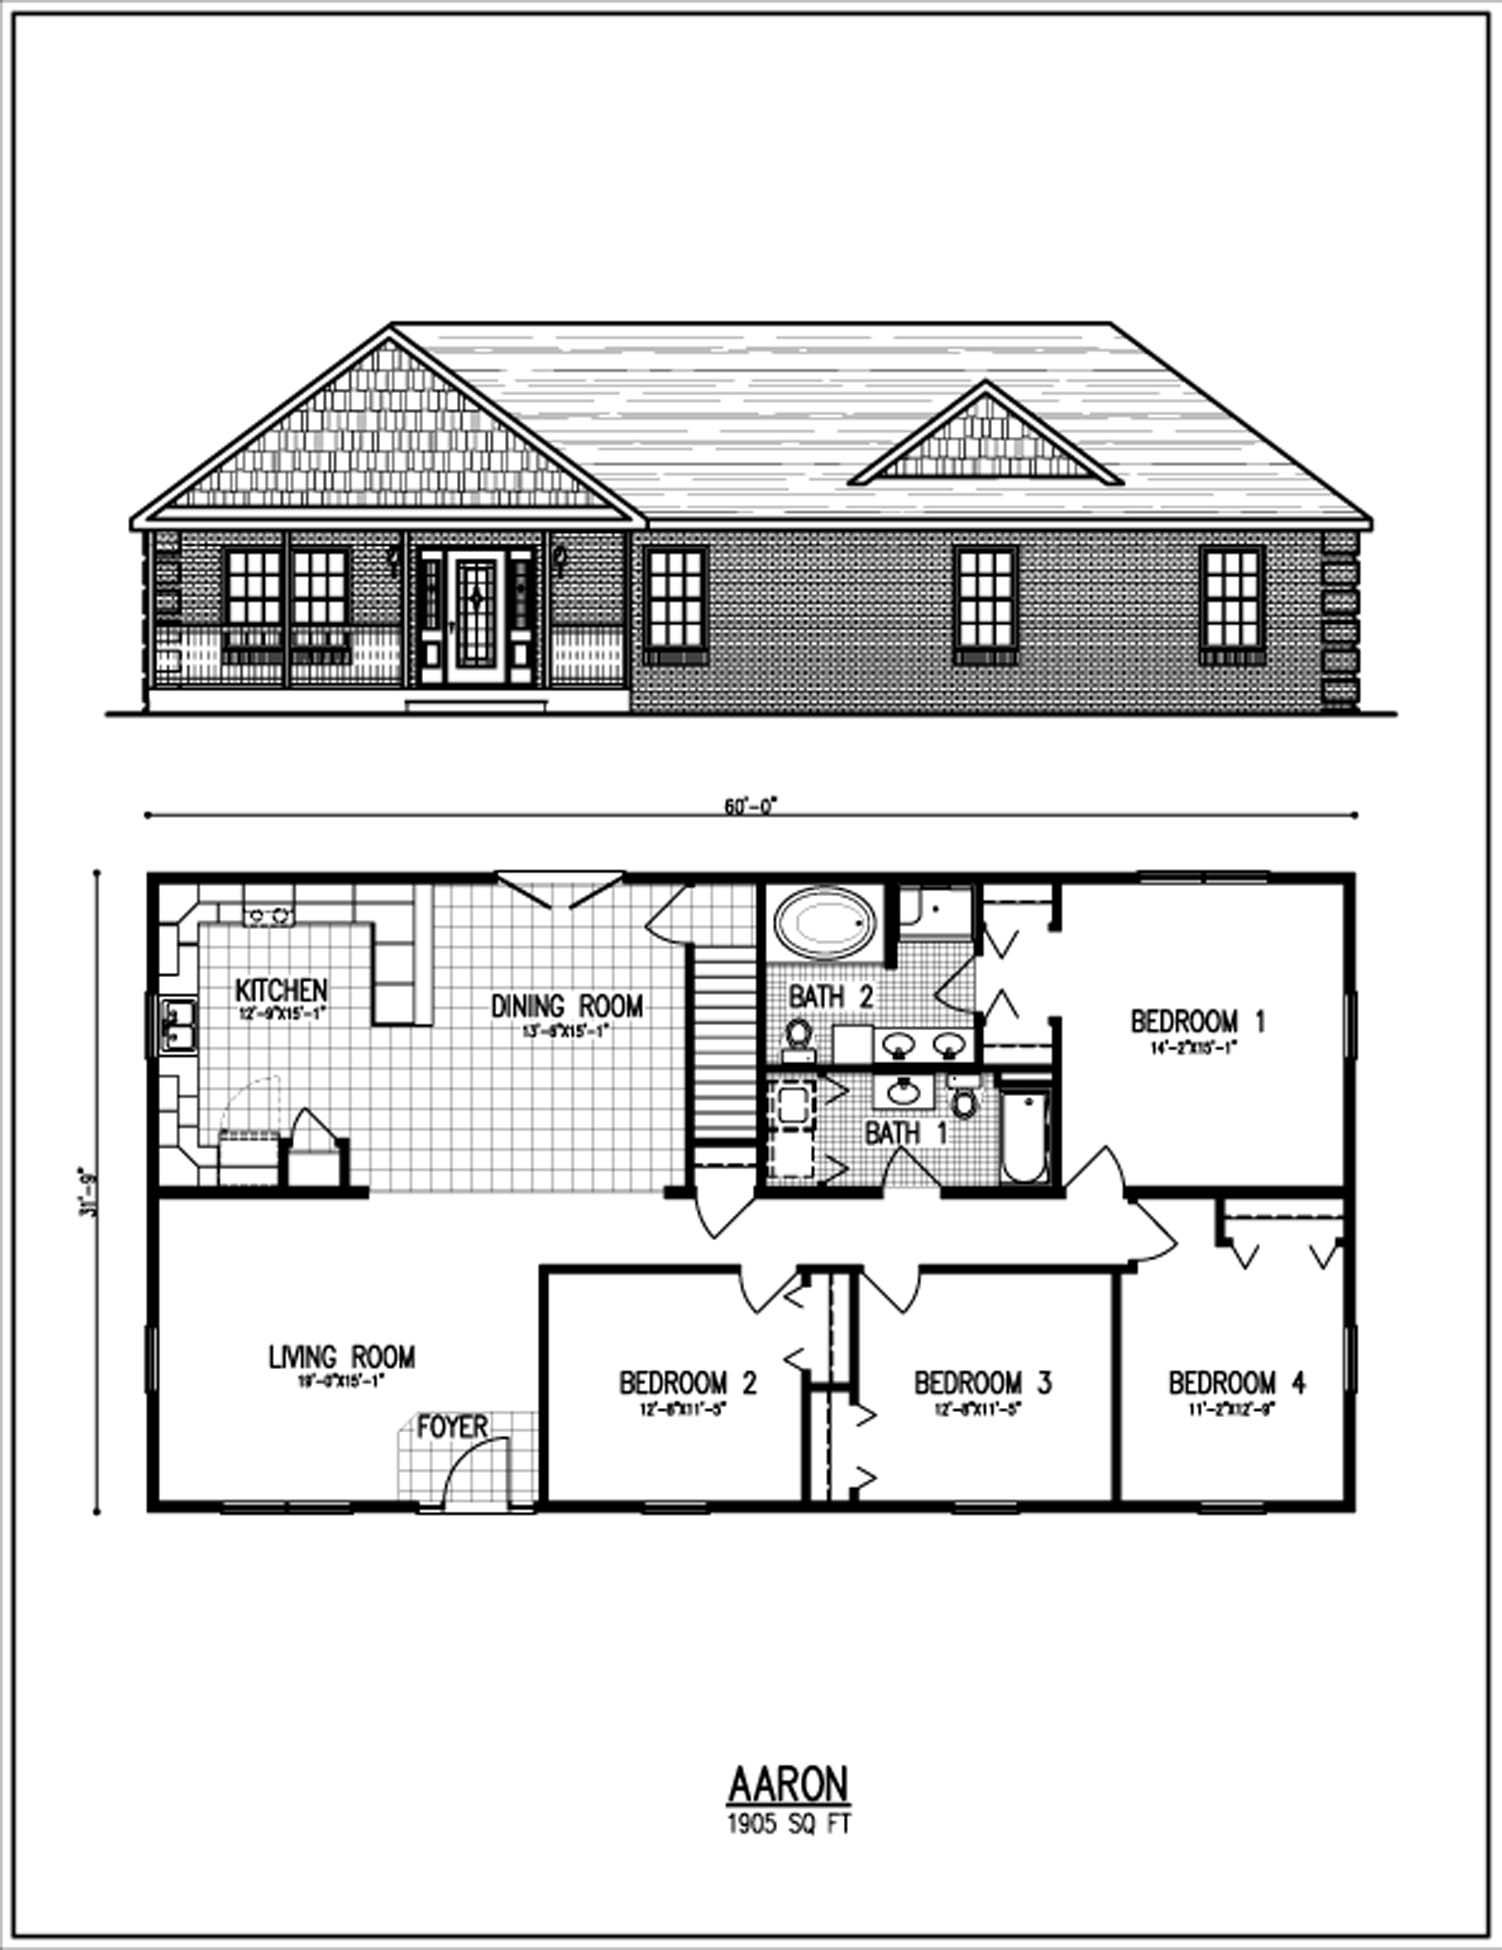 All american homes floorplan center staffordcape mynexthome pinterest ranch style Design home free